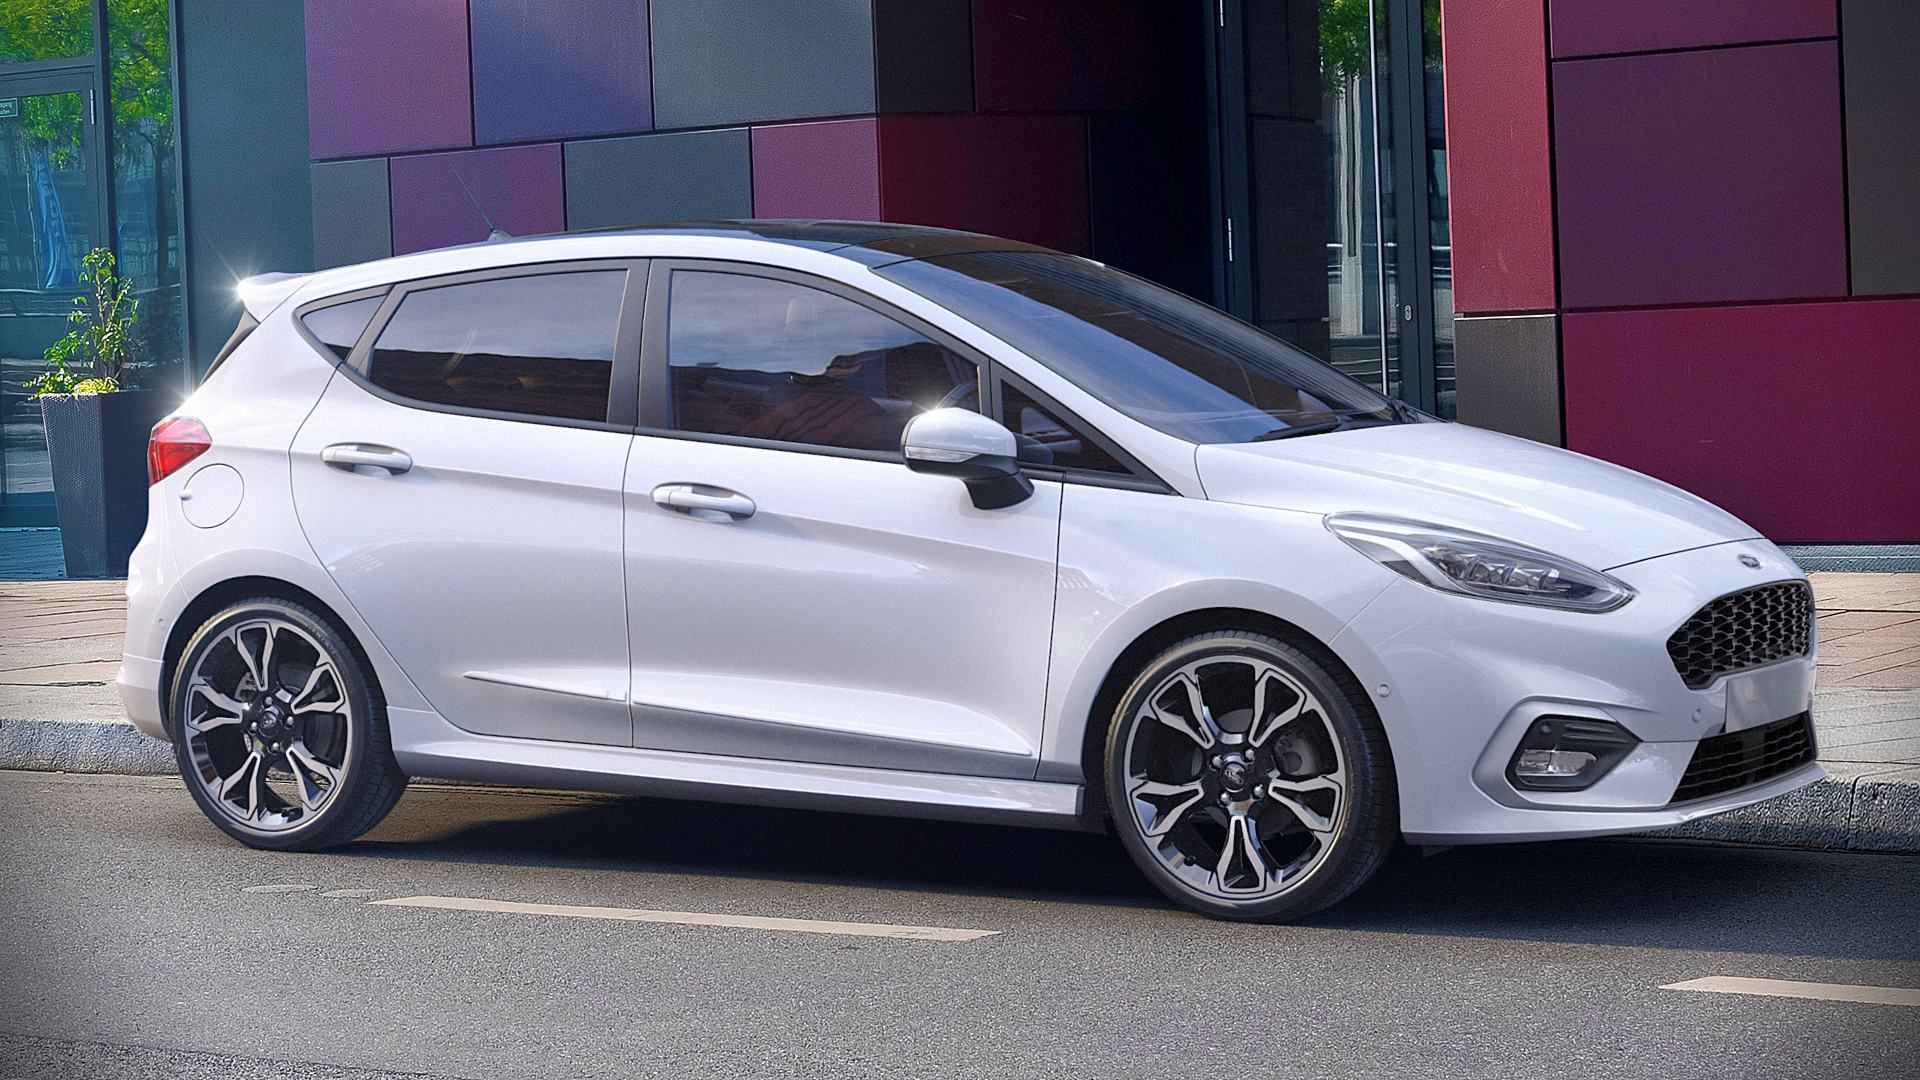 2021 Ford Fiesta St Usa Specs, Redesign, Engine, Changes ...